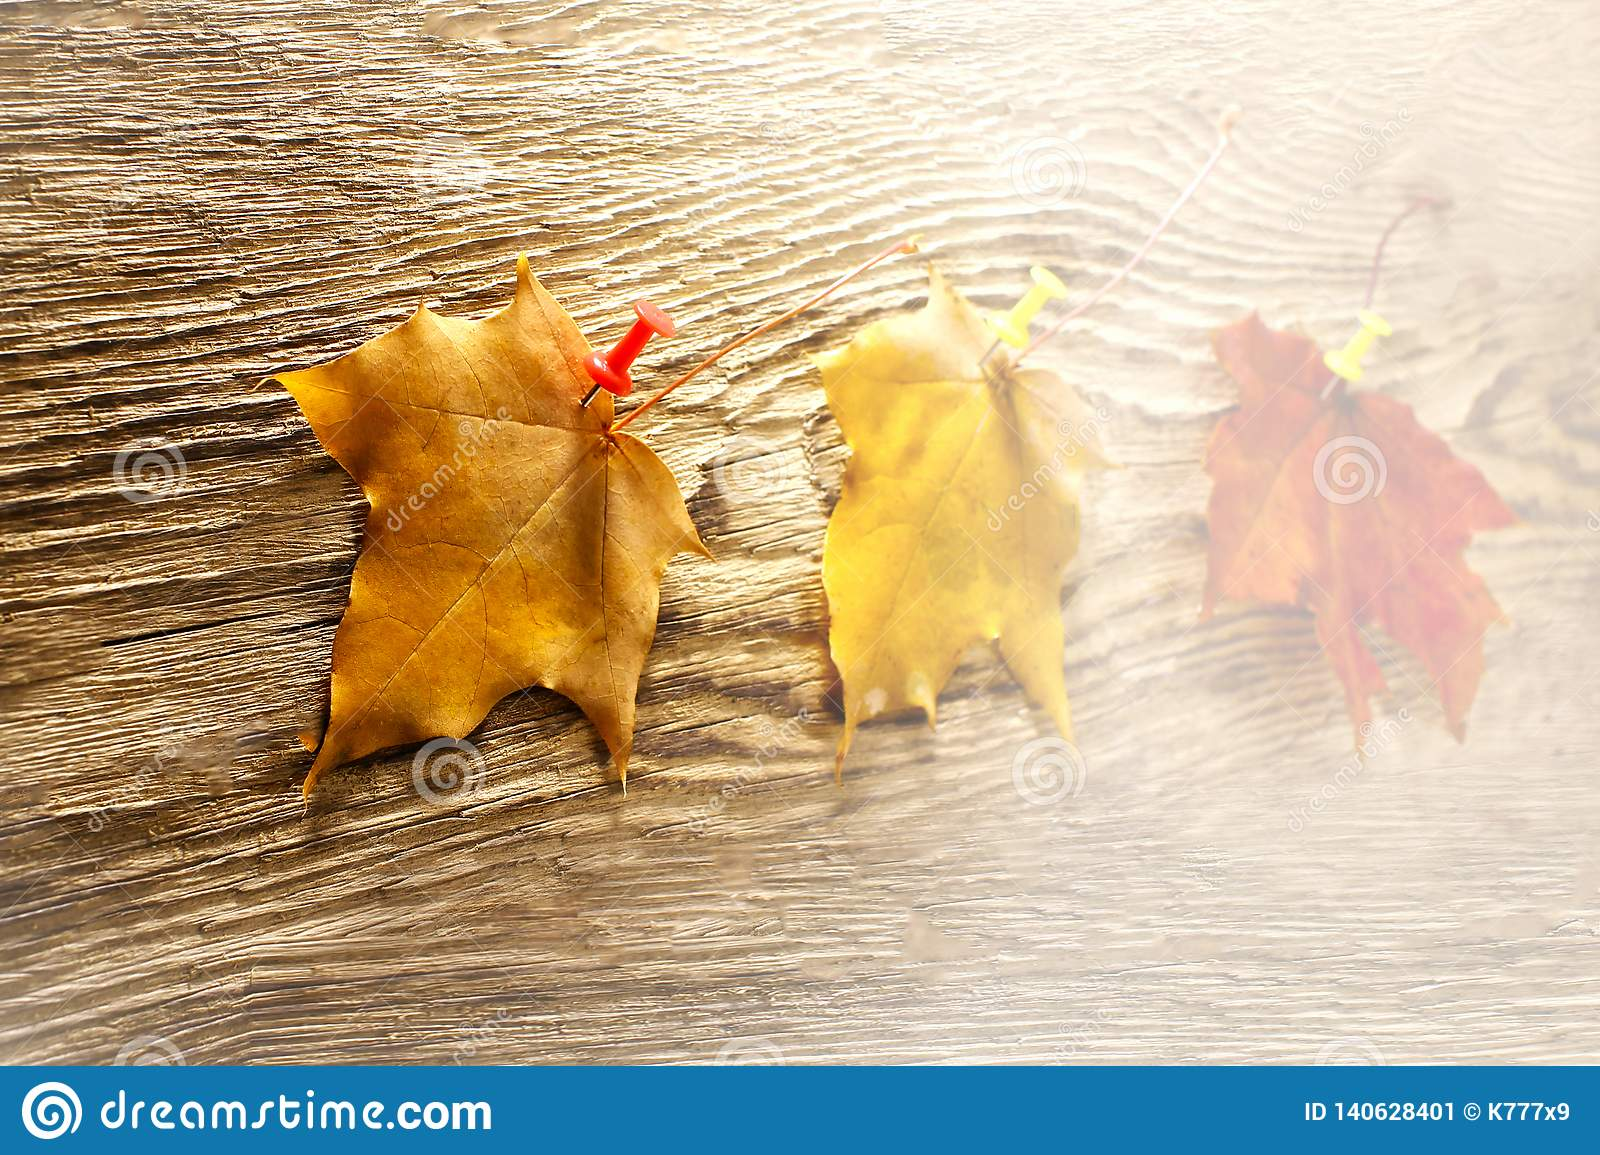 Autumn maple leaves clipart on wooden table.Falling leaves natural background. toned